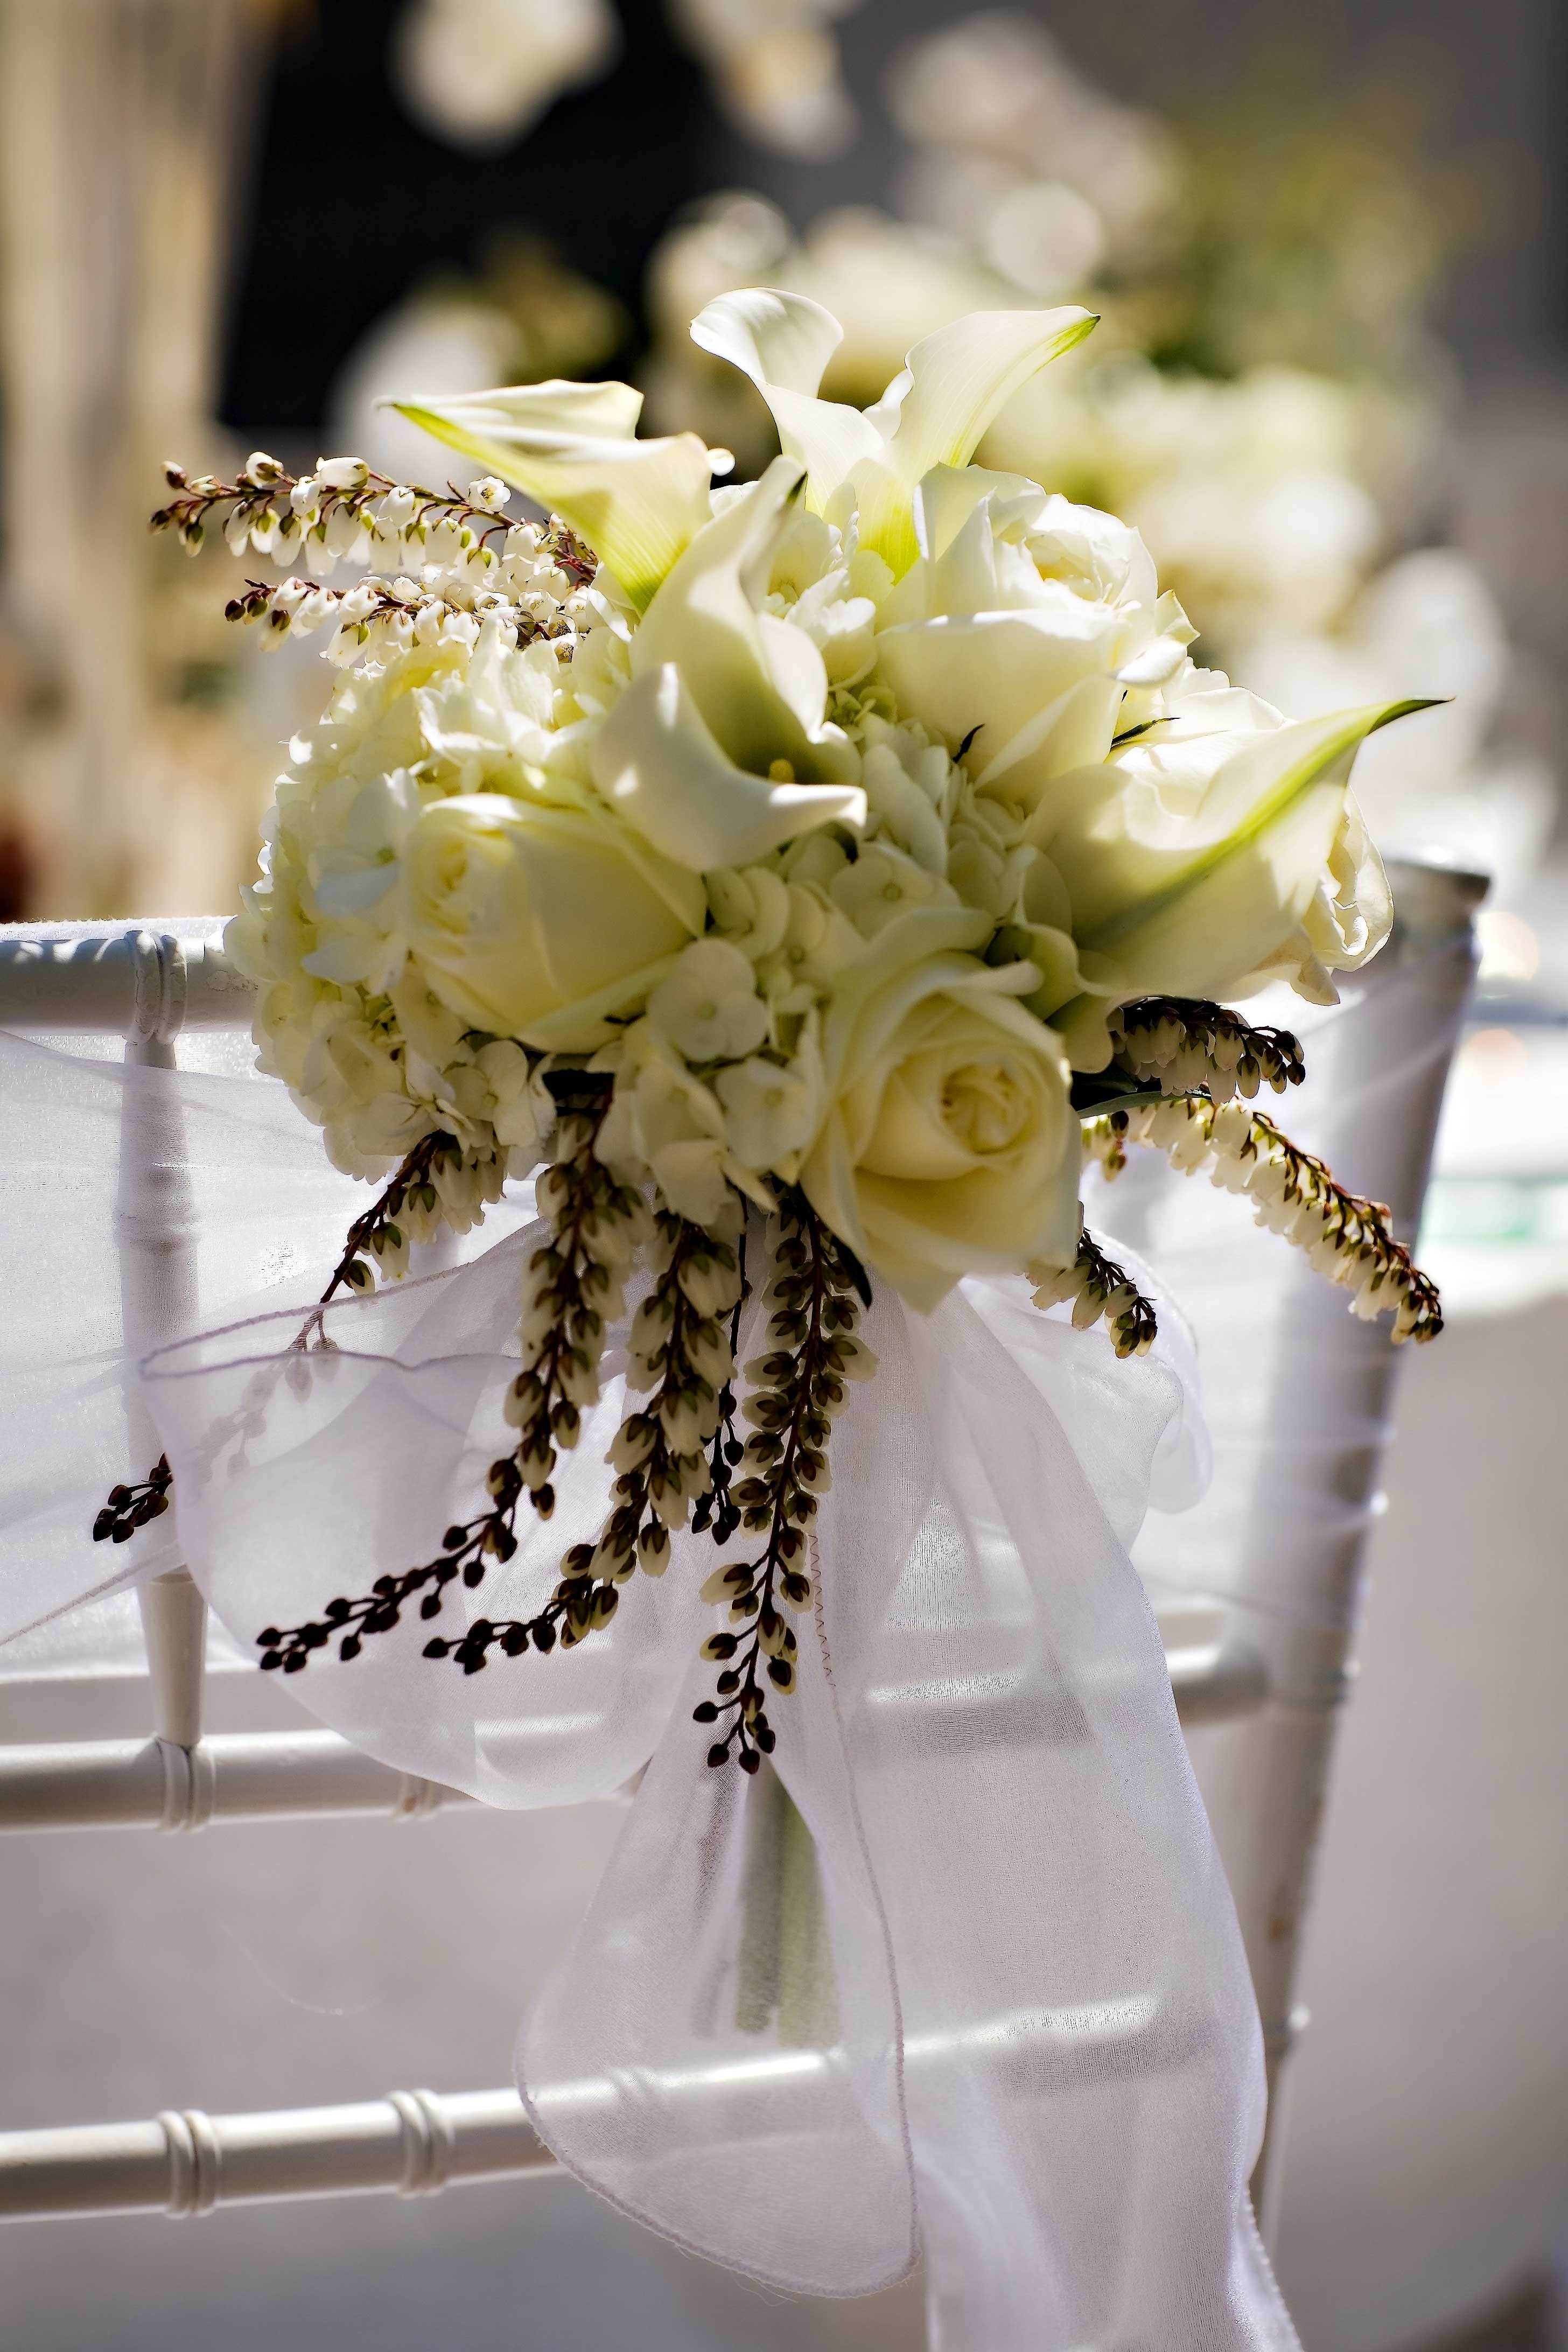 Reception, Flowers & Decor, Flowers, Chair